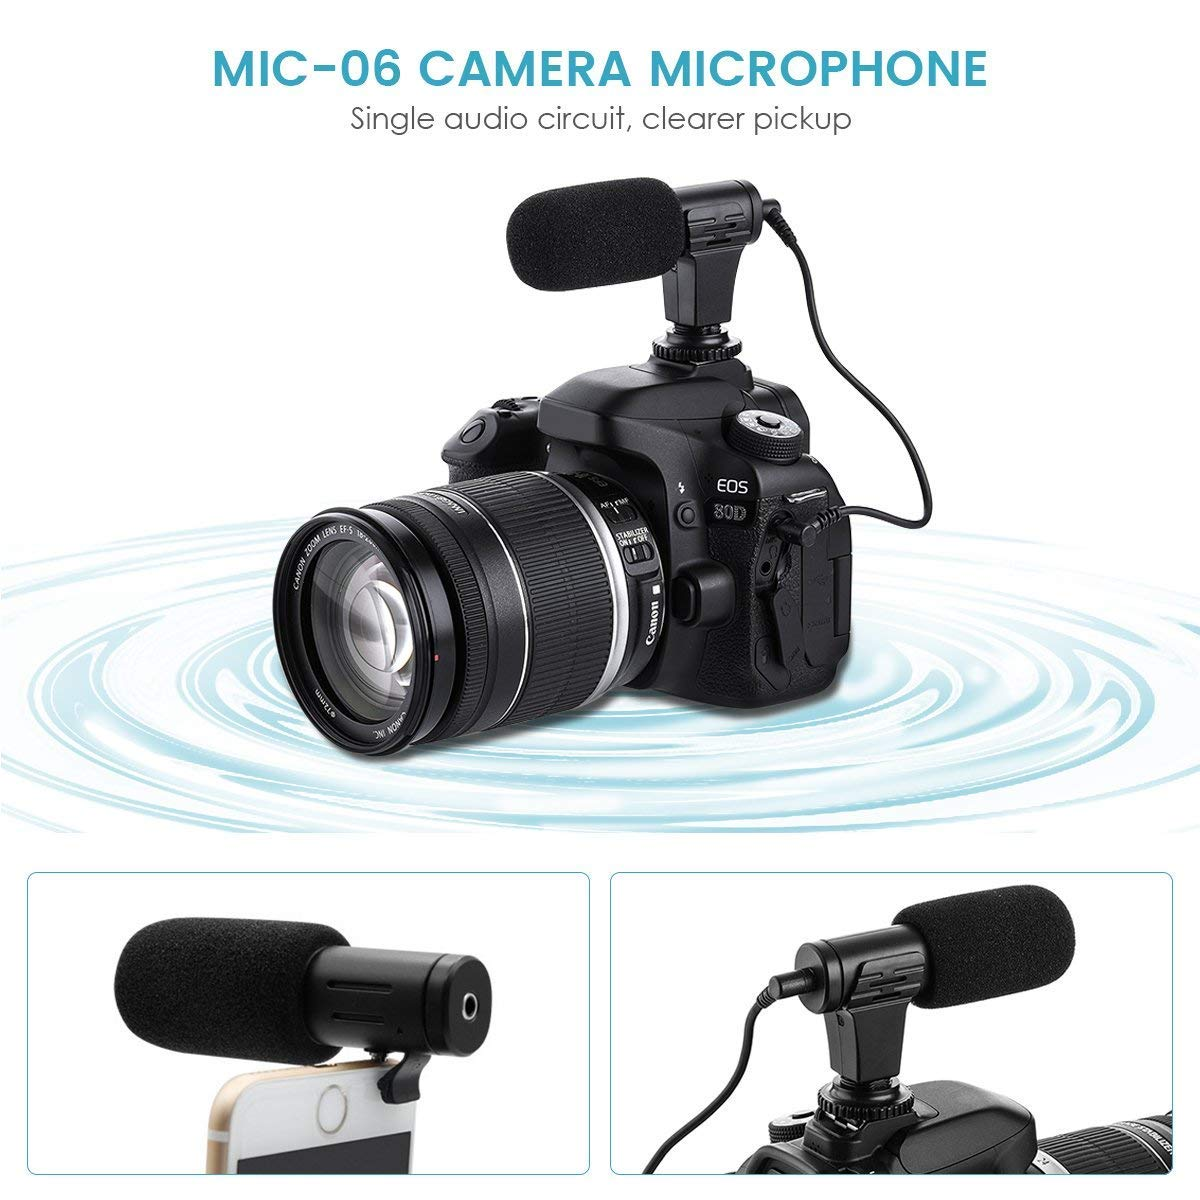 Camera Microphone Eivotor Mic 06 35mm Digital Video Wireless Circuit Audiocircuit Recording For D Slr Dv Mobile Phone And Computer Black